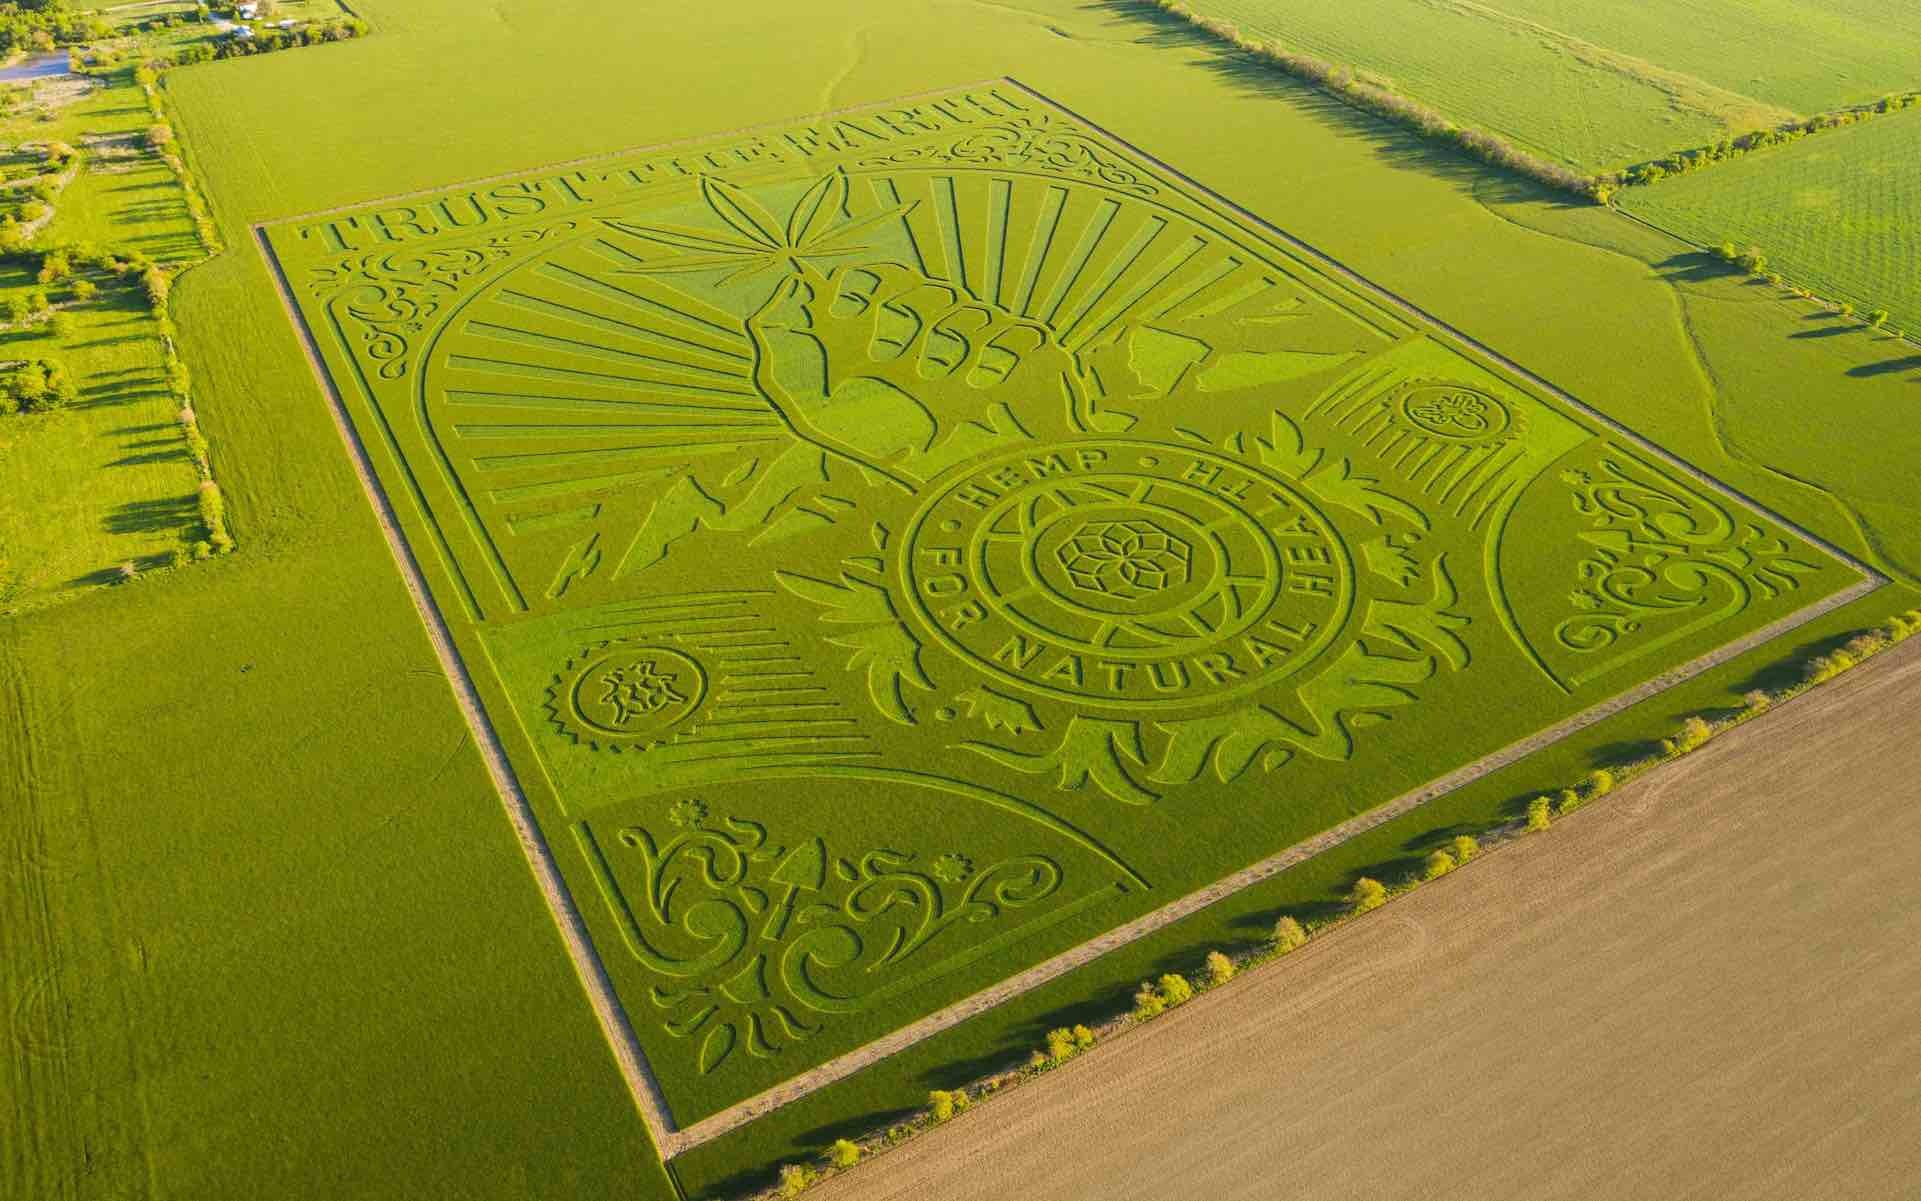 TrustTheEarth FarmFieldArt  sized weighed to BB - Shepard Fairey's 76-acre cannabis crop art will blow your mind